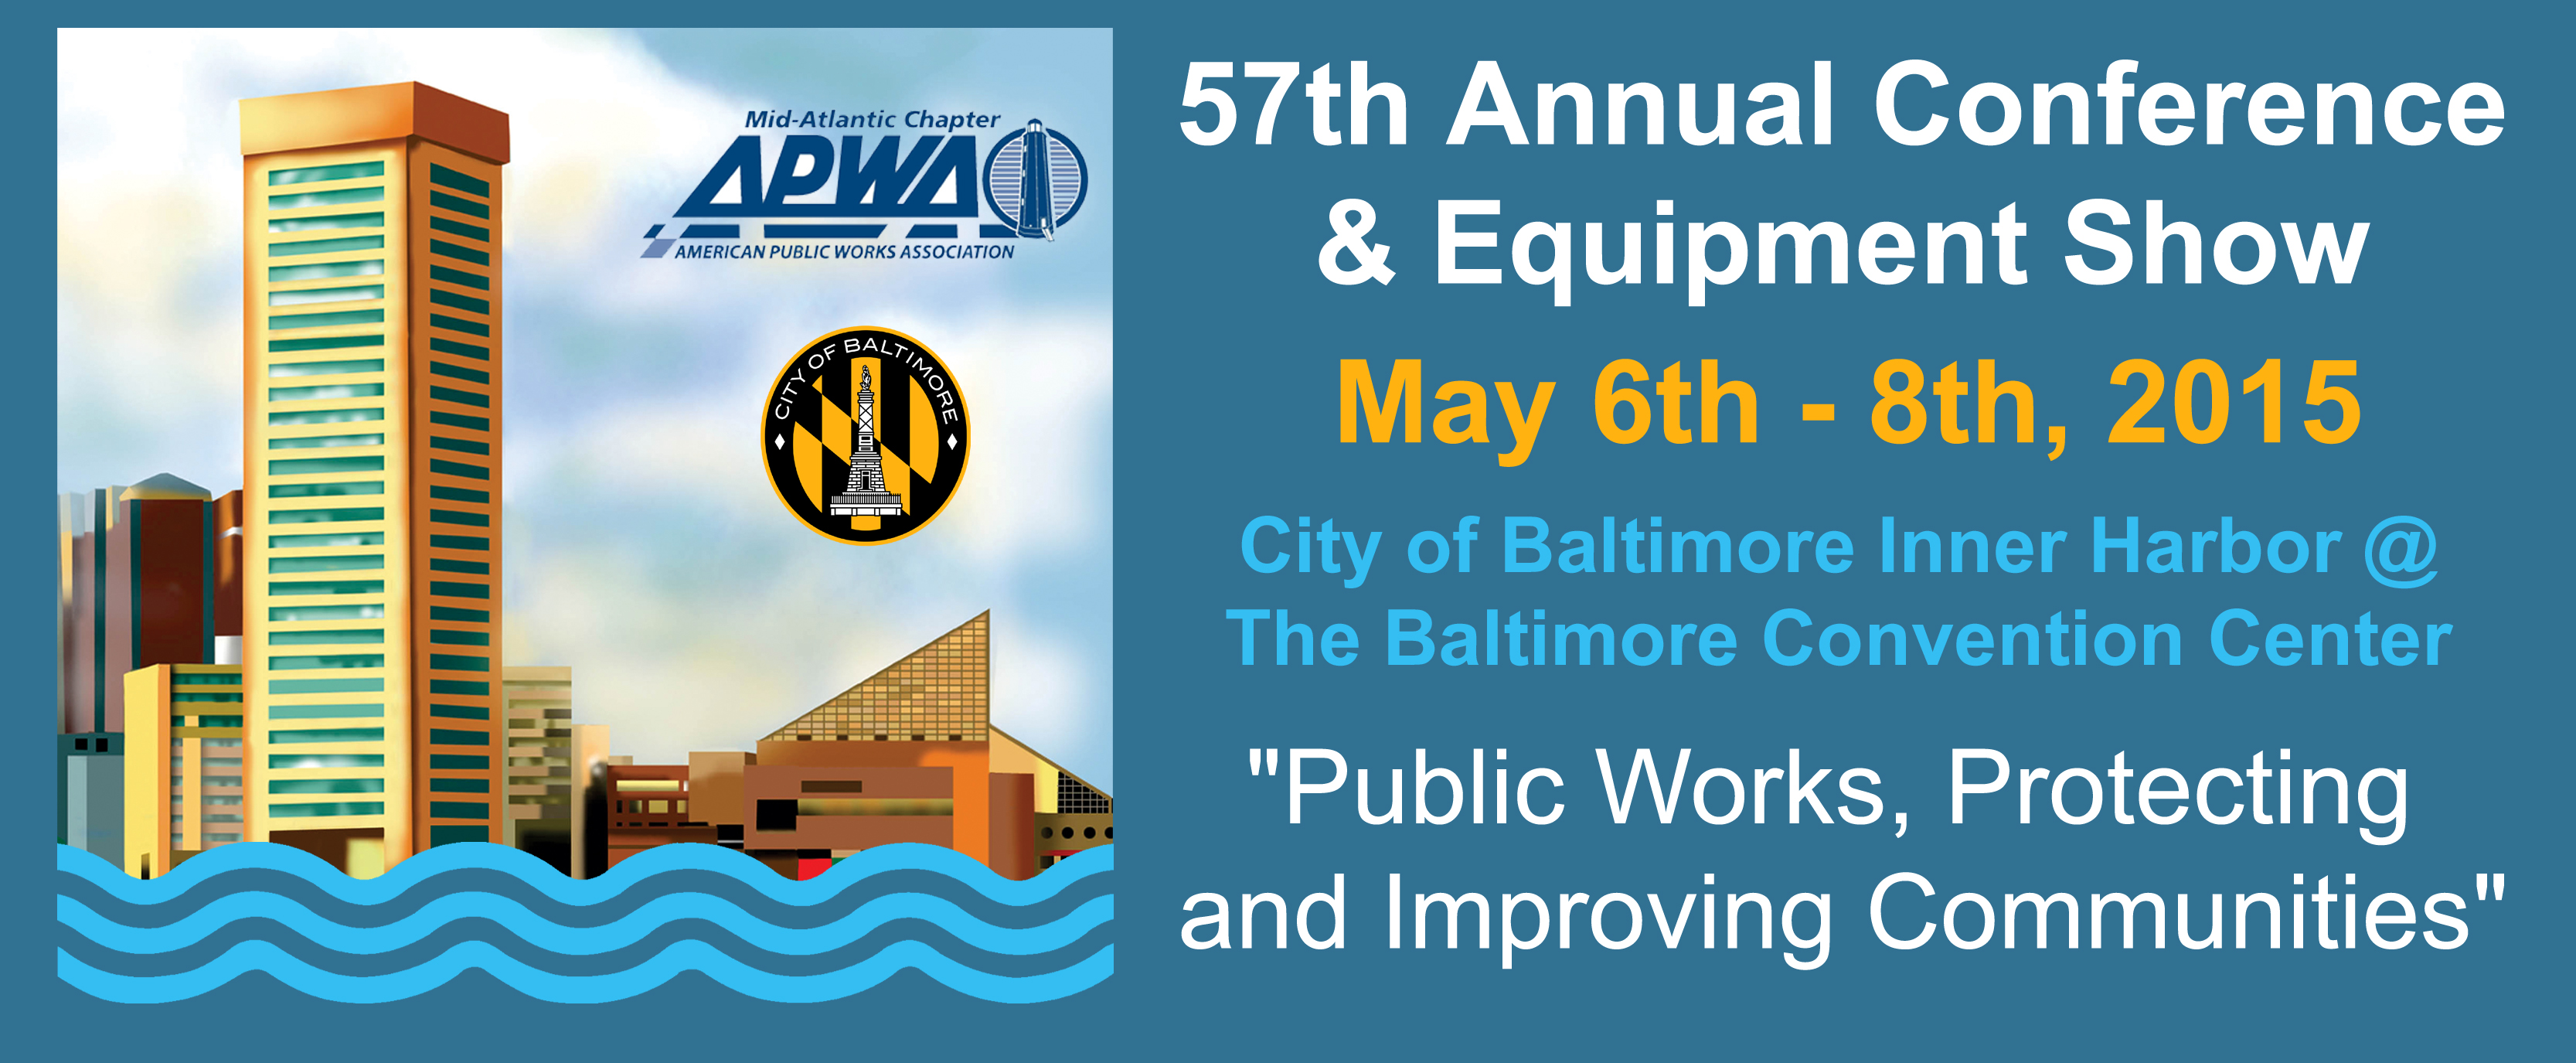 2015 Mid-Atlantic Chapter Conference and Equipment show